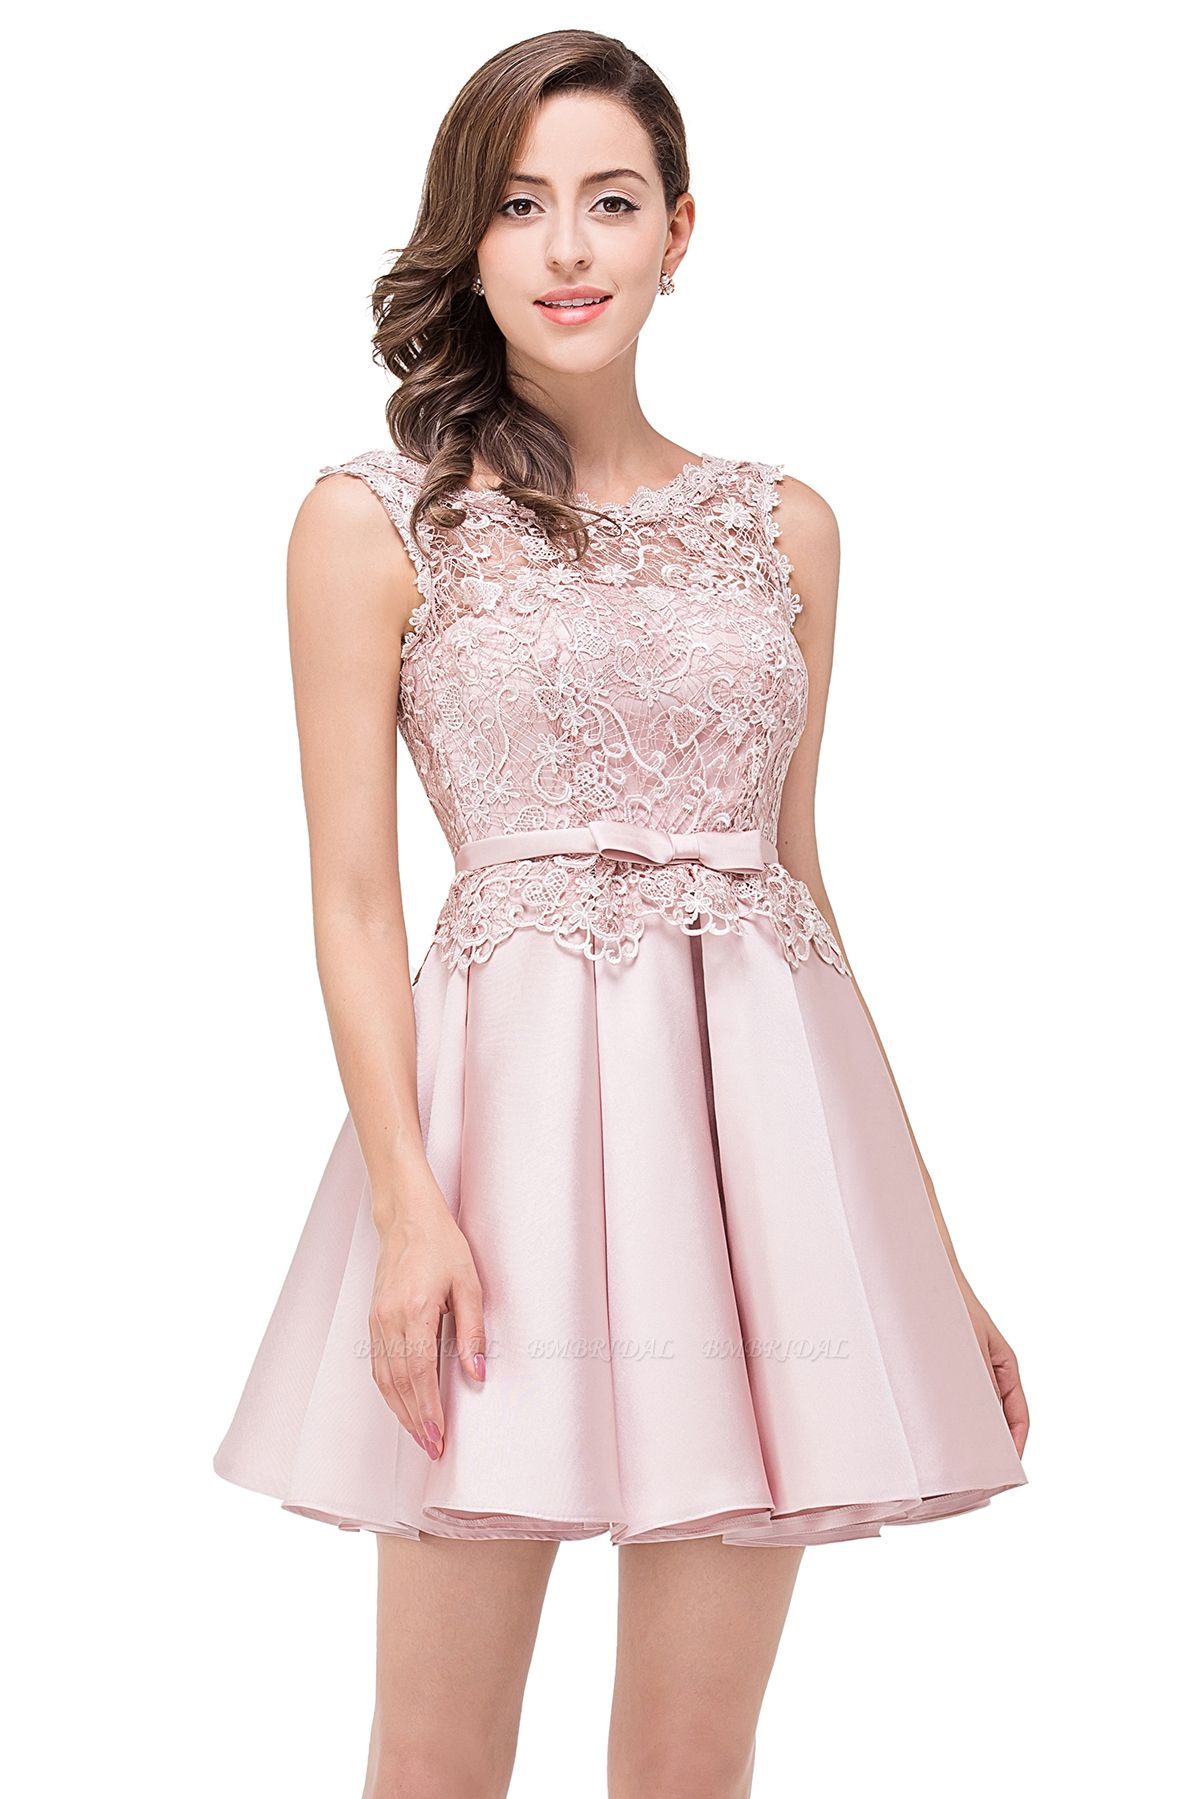 BMbridal A-line Knee-length Satin Homecoming Dress with Lace